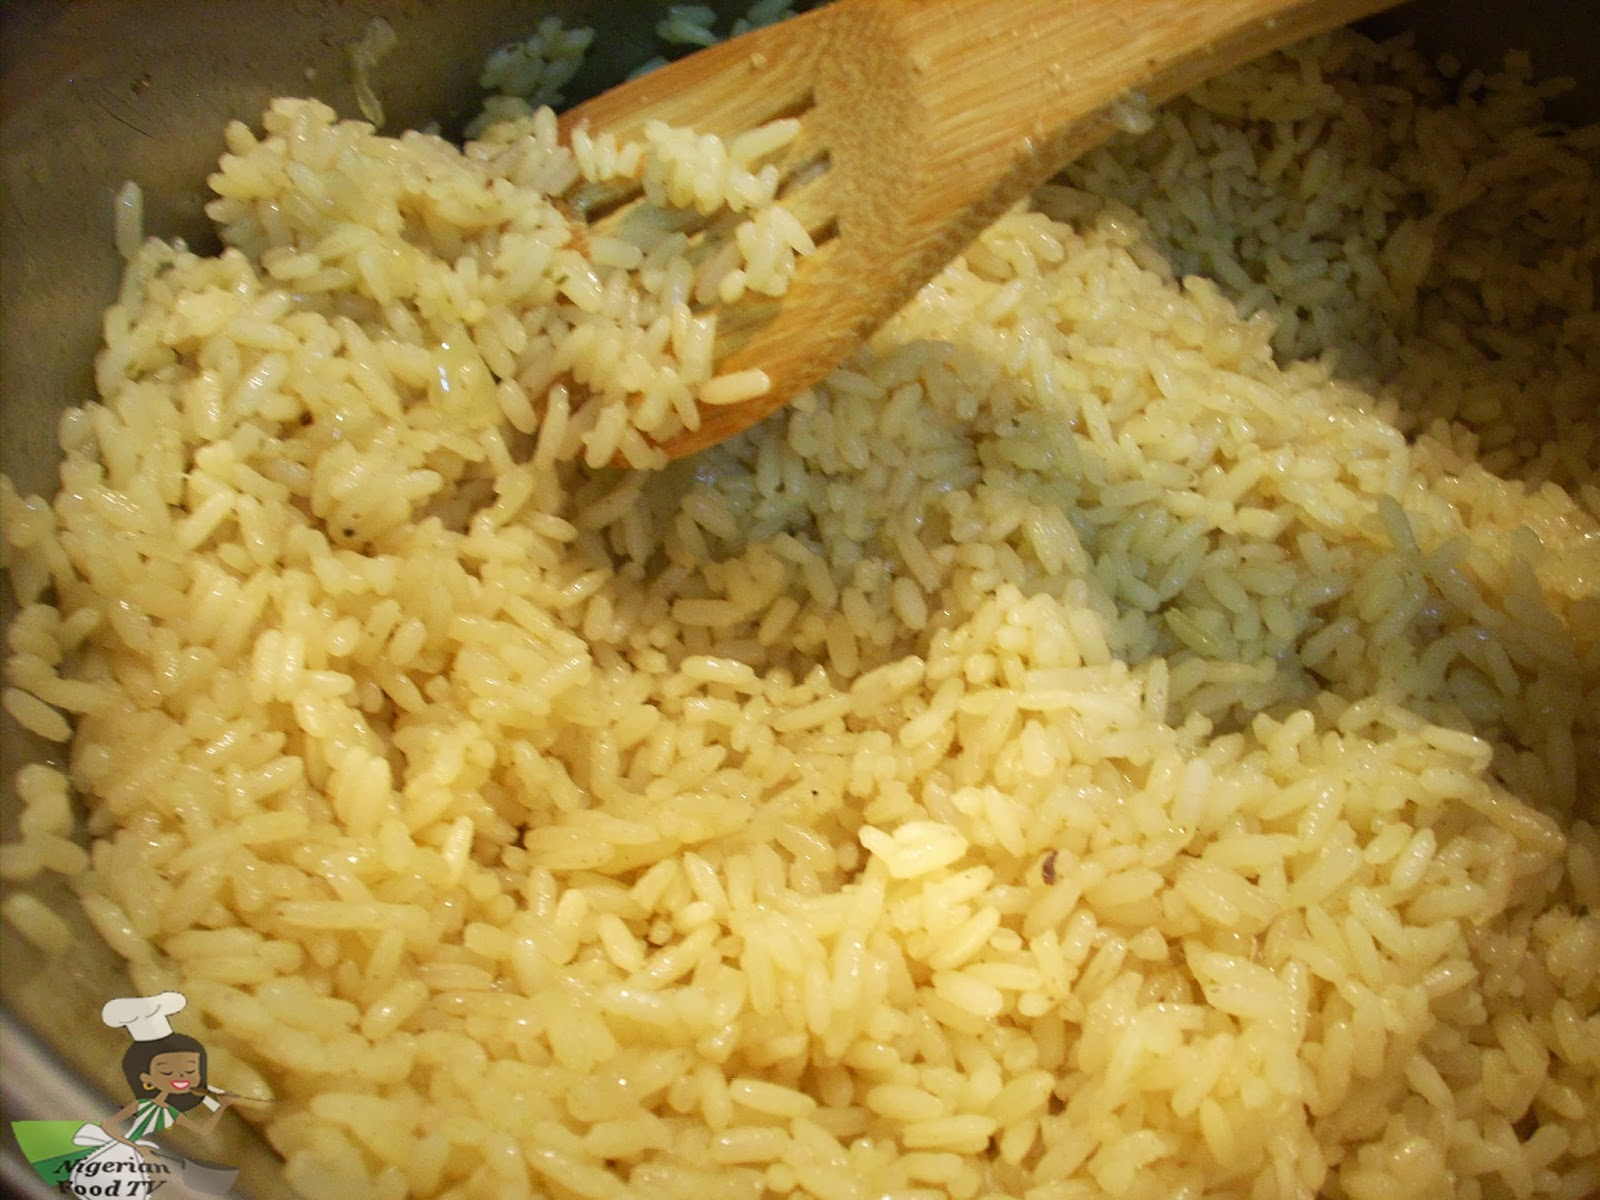 Process essay how to cook rice